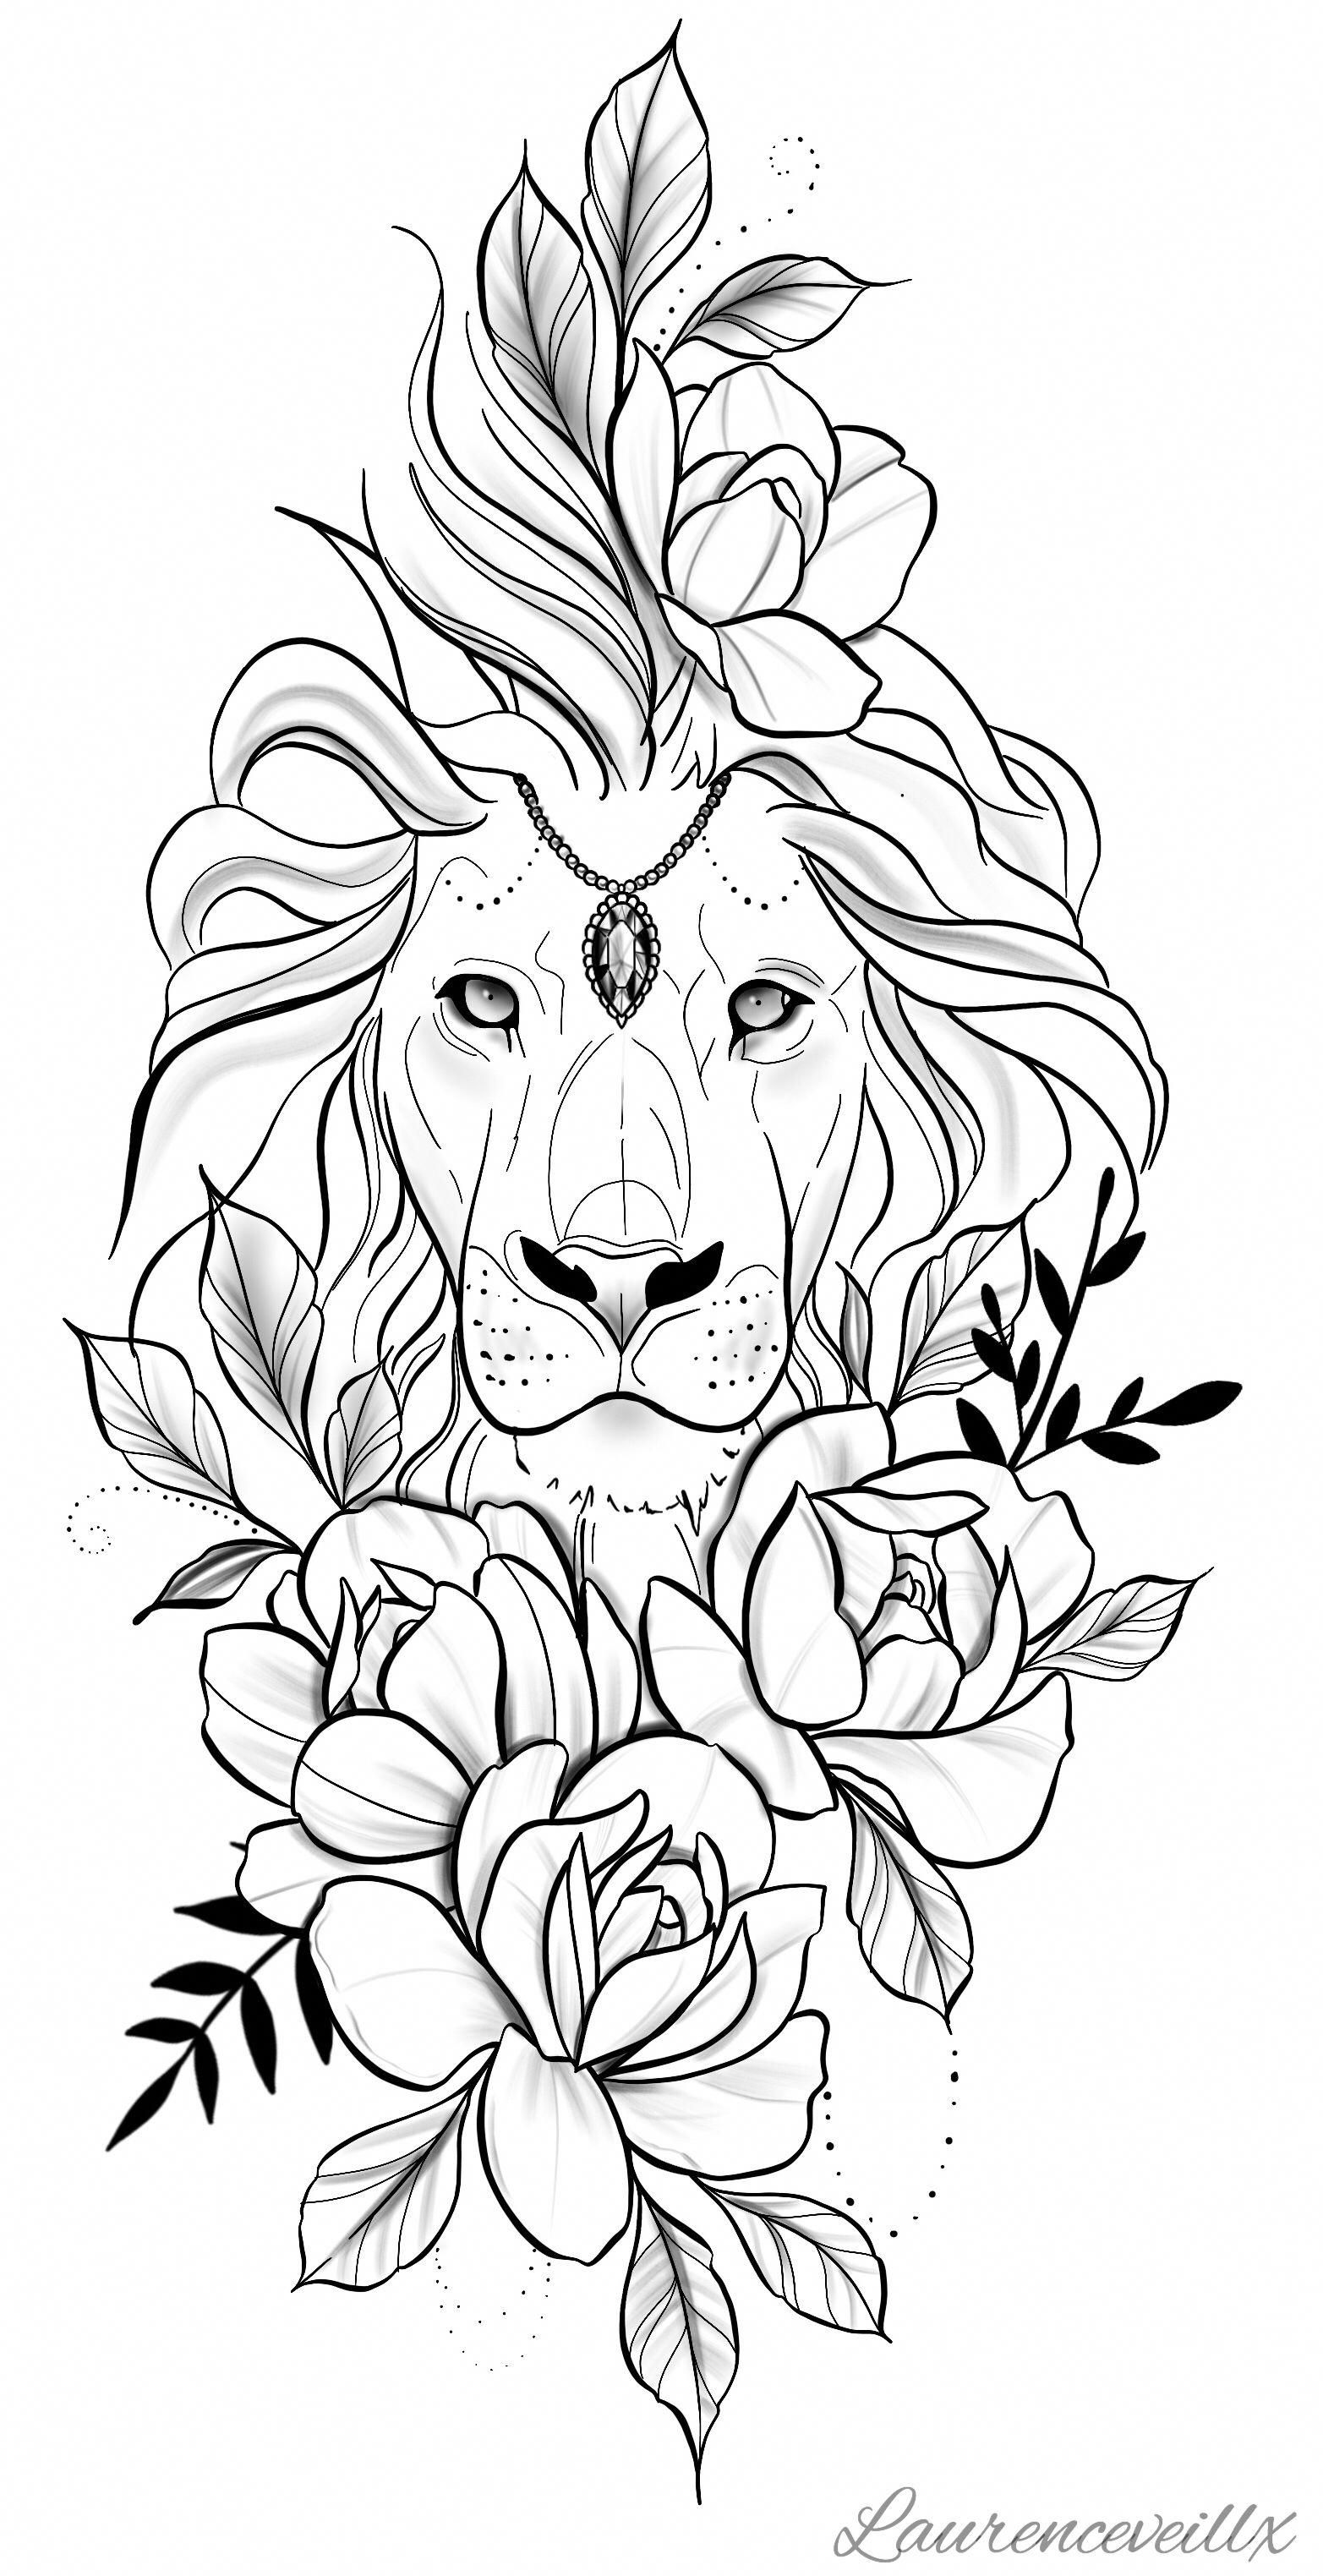 Abstract Pattern Tattoos Patterntattoos In 2020 Lion Flower Lion Tattoo Design Printable Tattoos